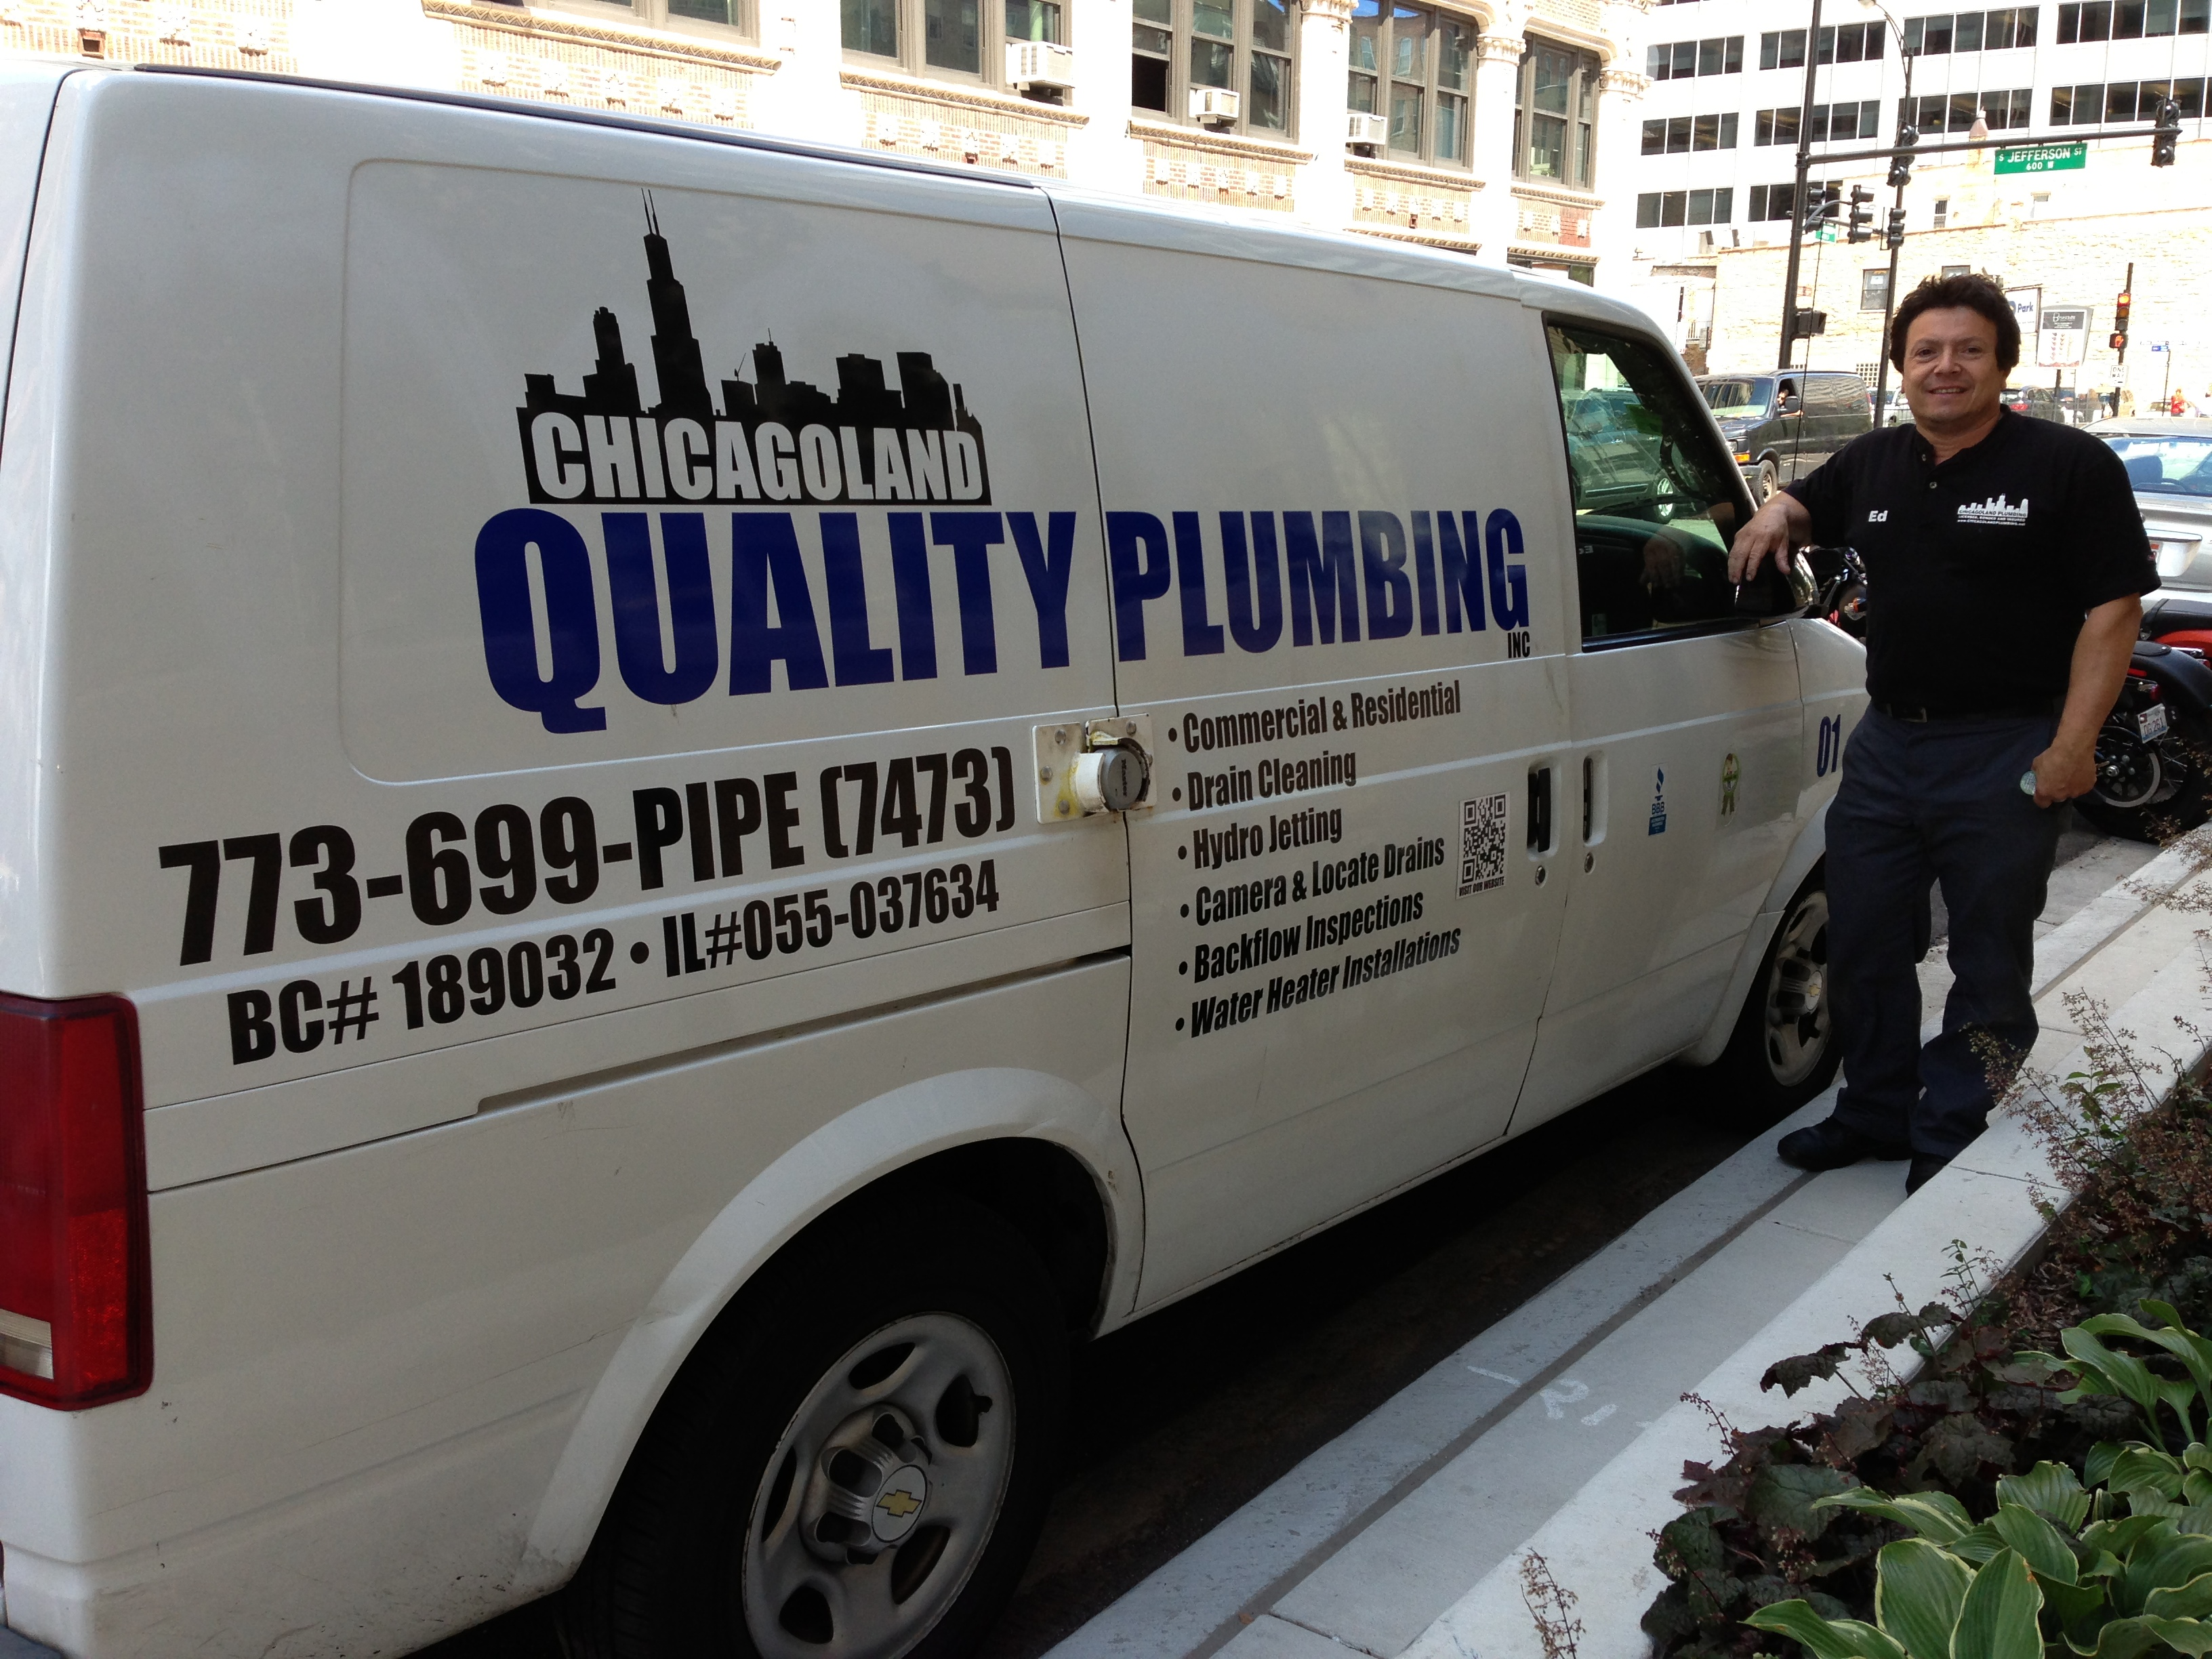 Chicagoland Quality Plumbing Inc Chicago Illinois IL